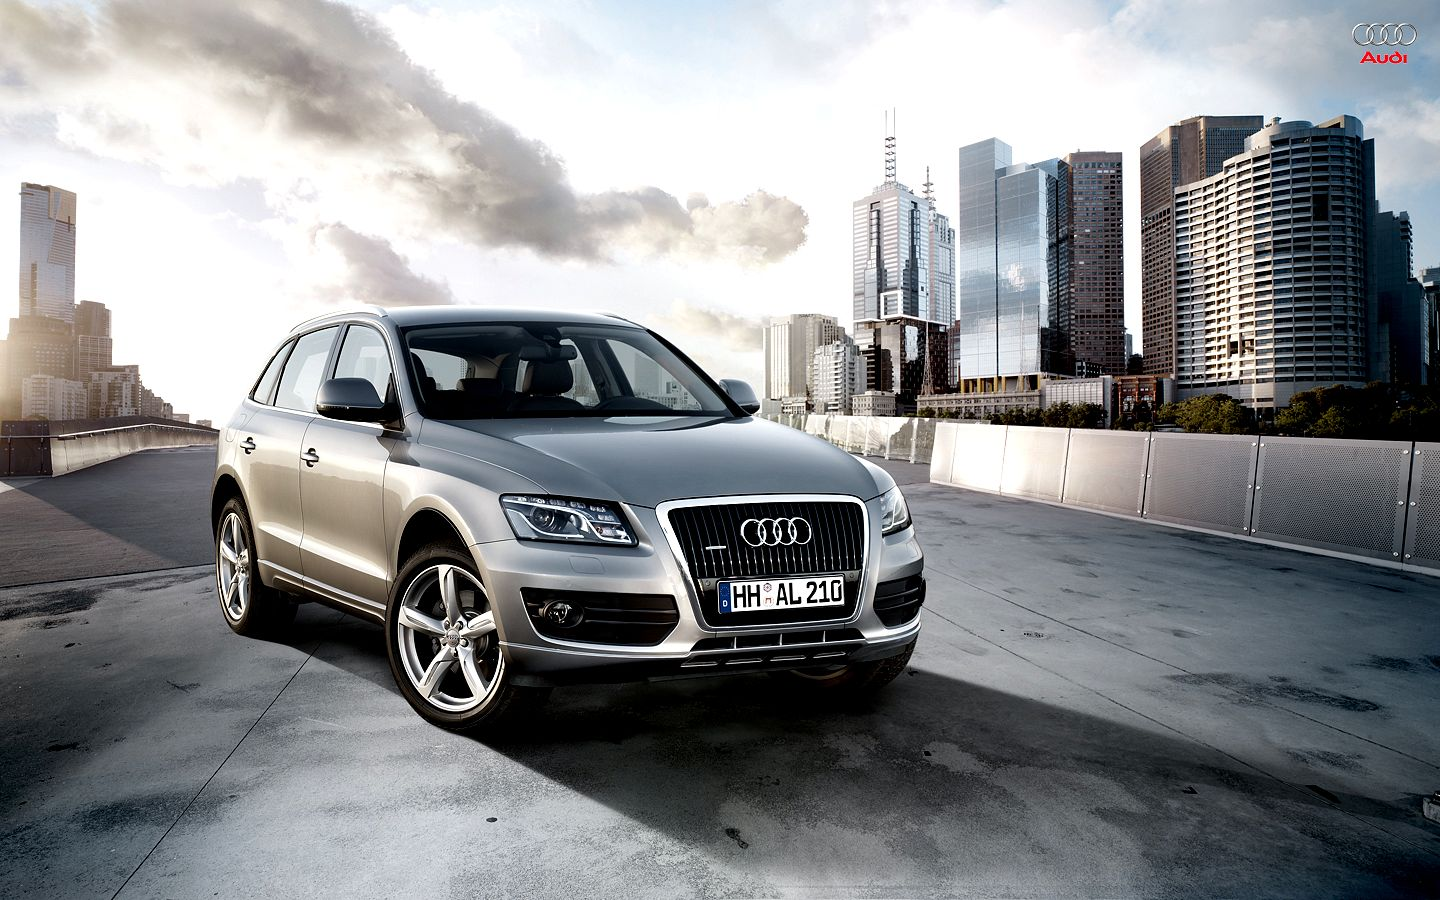 1440x900 - Audi Q5 Wallpapers 2